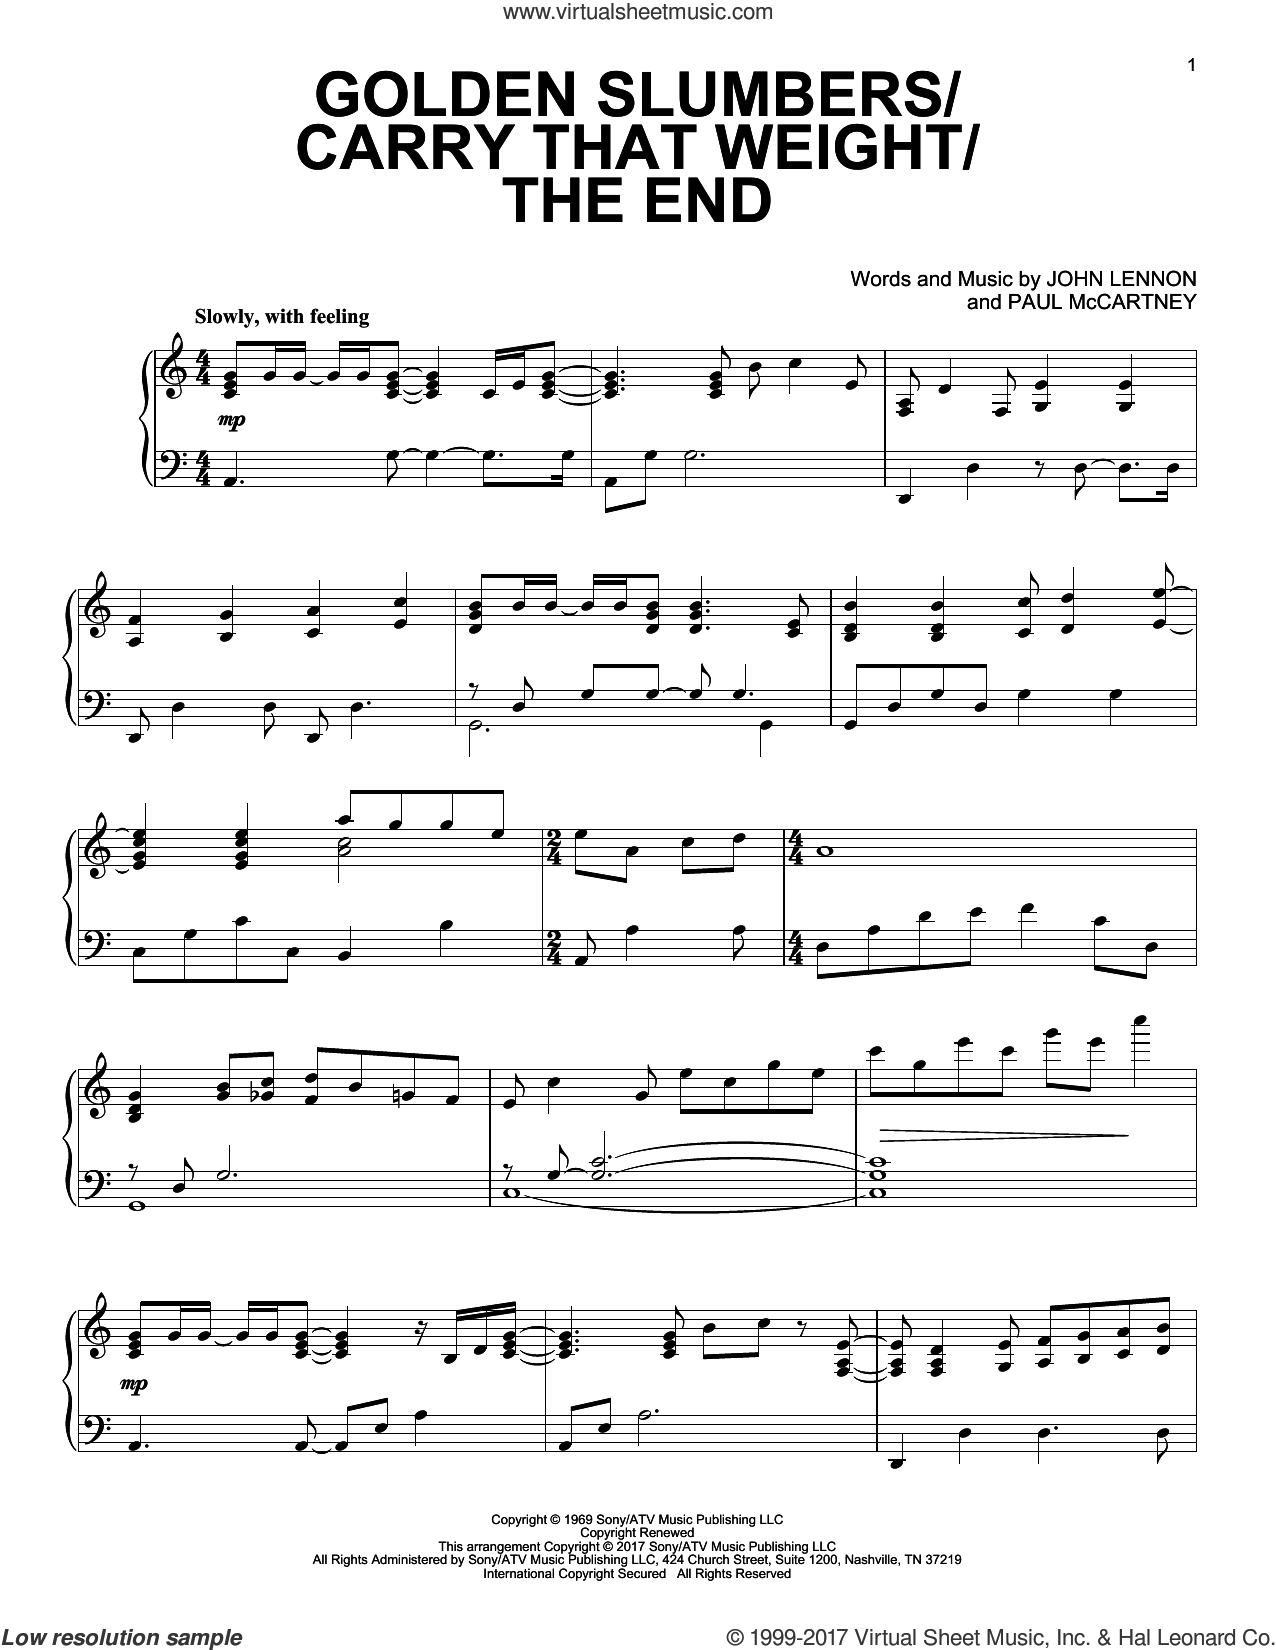 Golden Slumbers/Carry That Weight/The End sheet music for piano solo by Paul McCartney and John Lennon. Score Image Preview.